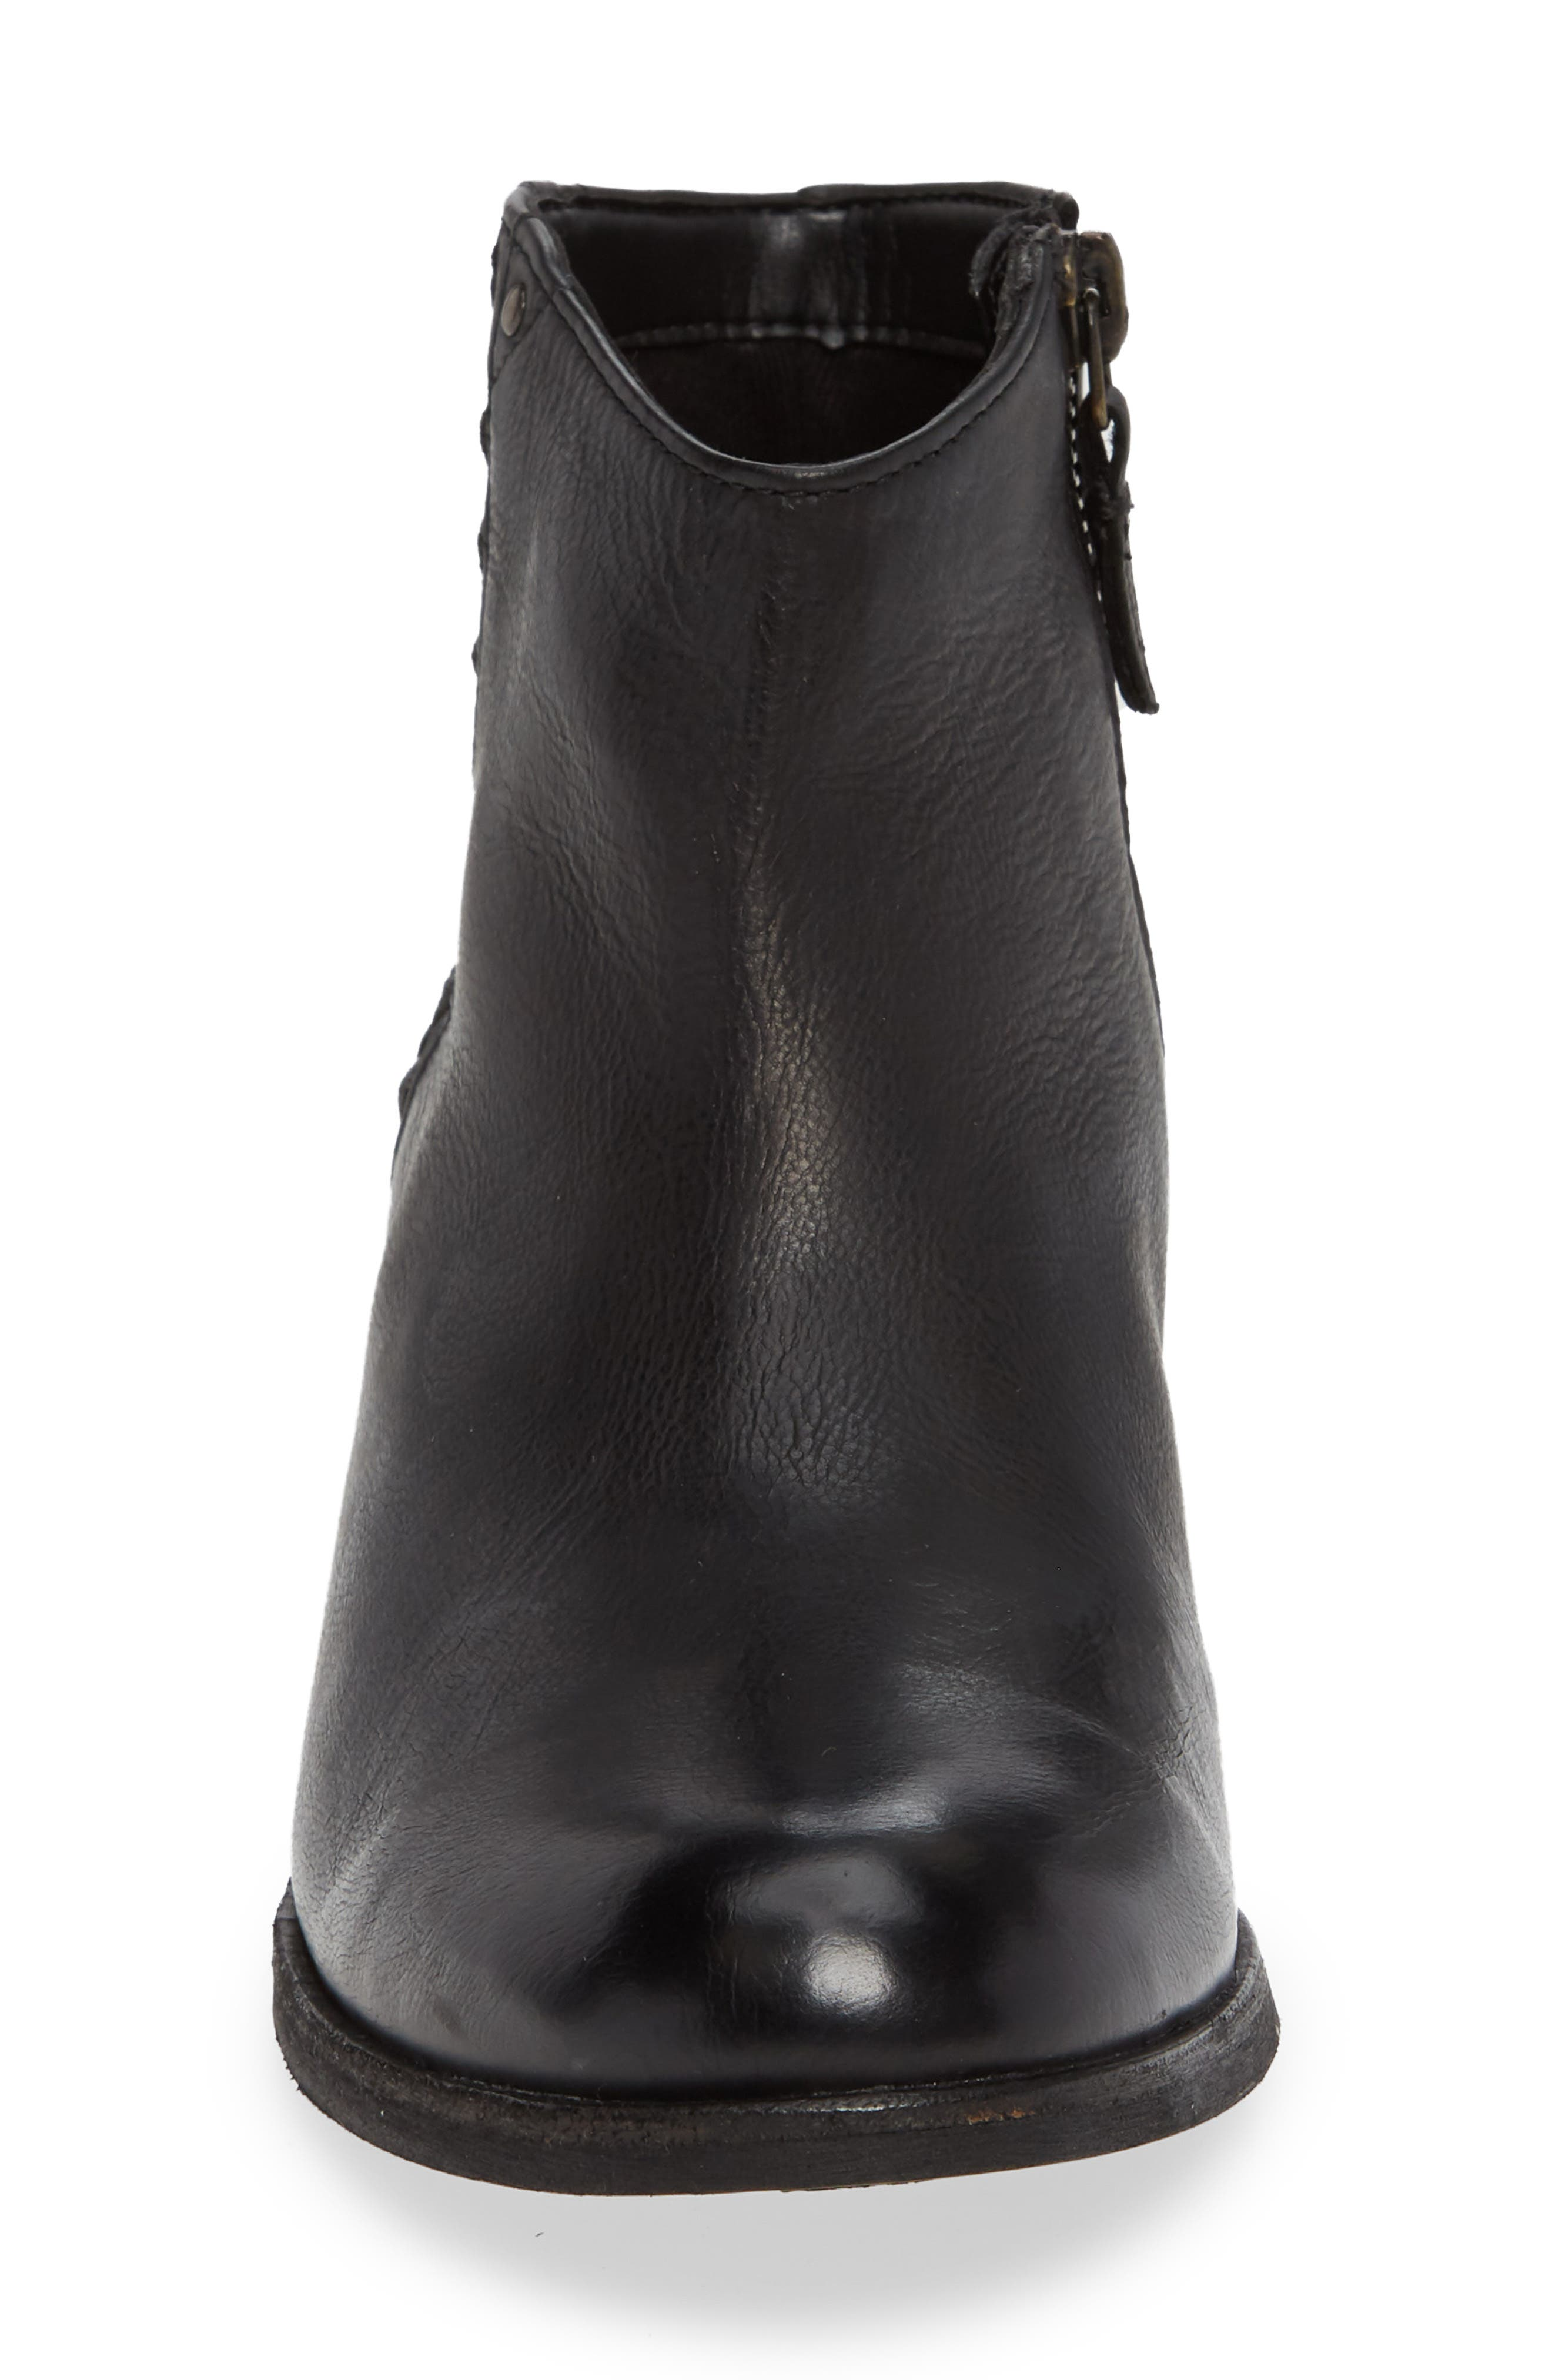 CLARKS<SUP>®</SUP>, Maypearl Fawn Bootie, Alternate thumbnail 4, color, BLACK LEATHER